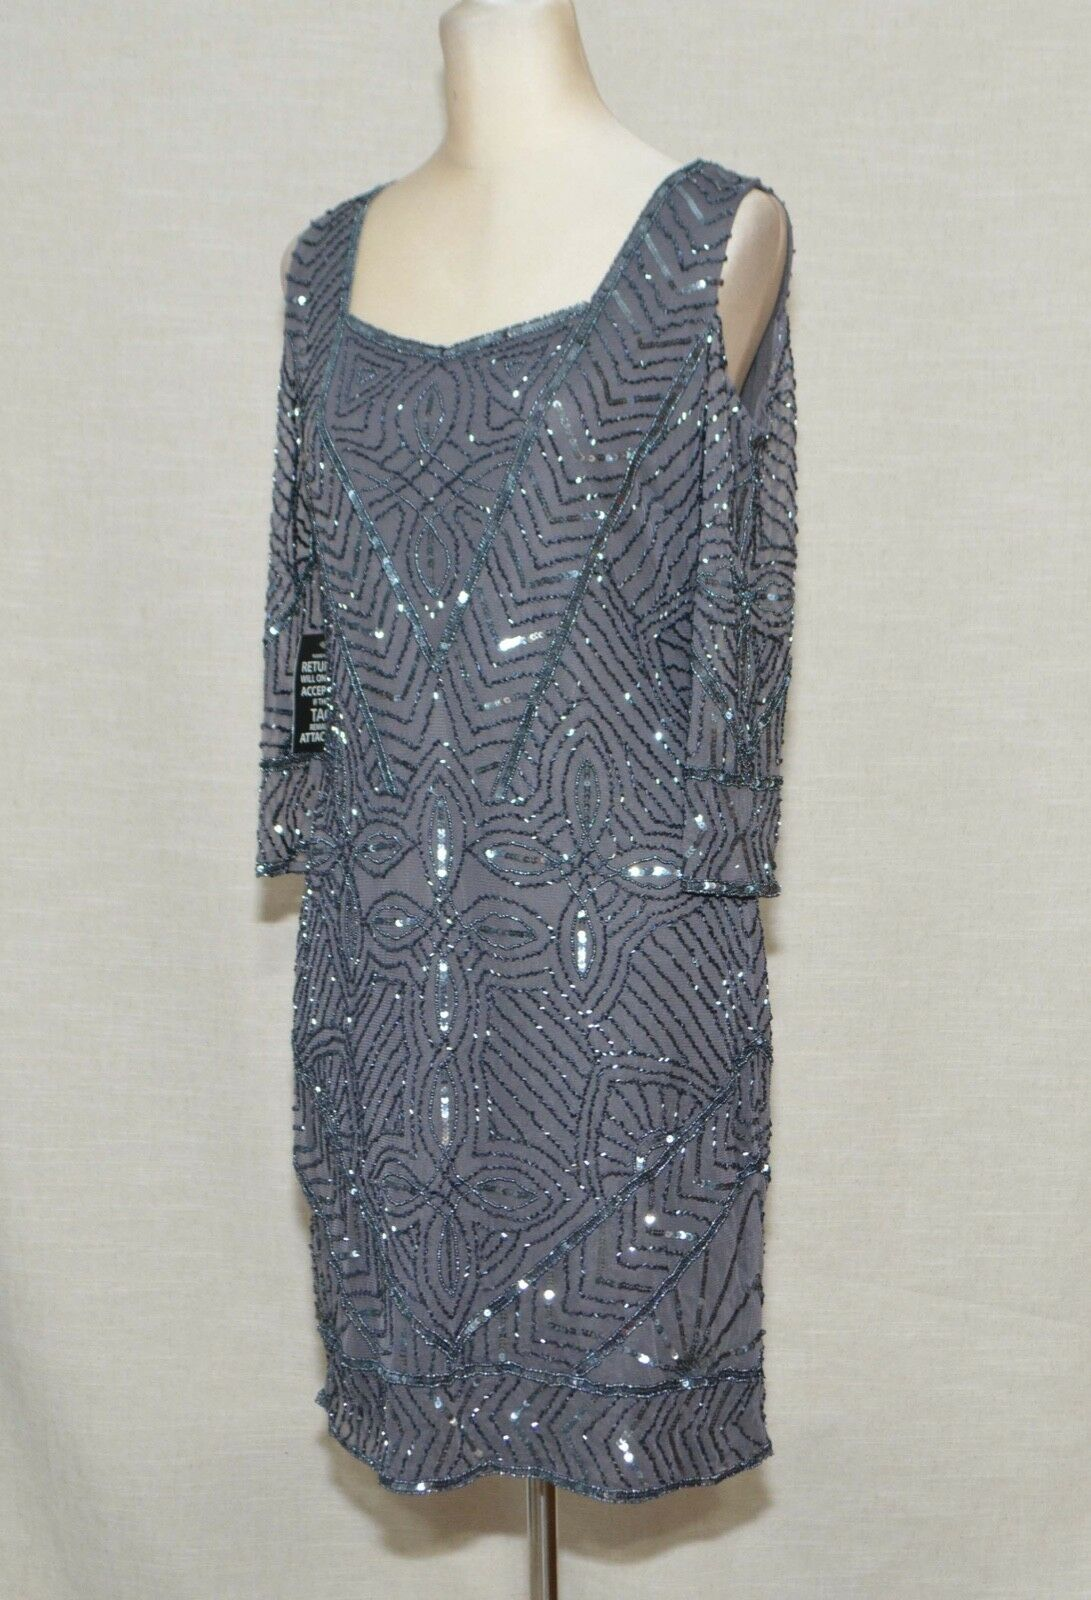 NWT ModCloth Beaded Shift Dress Sz 6 Resplendent Reveries Reveries Reveries Grey Cold Shoulder Rtr 17ab25